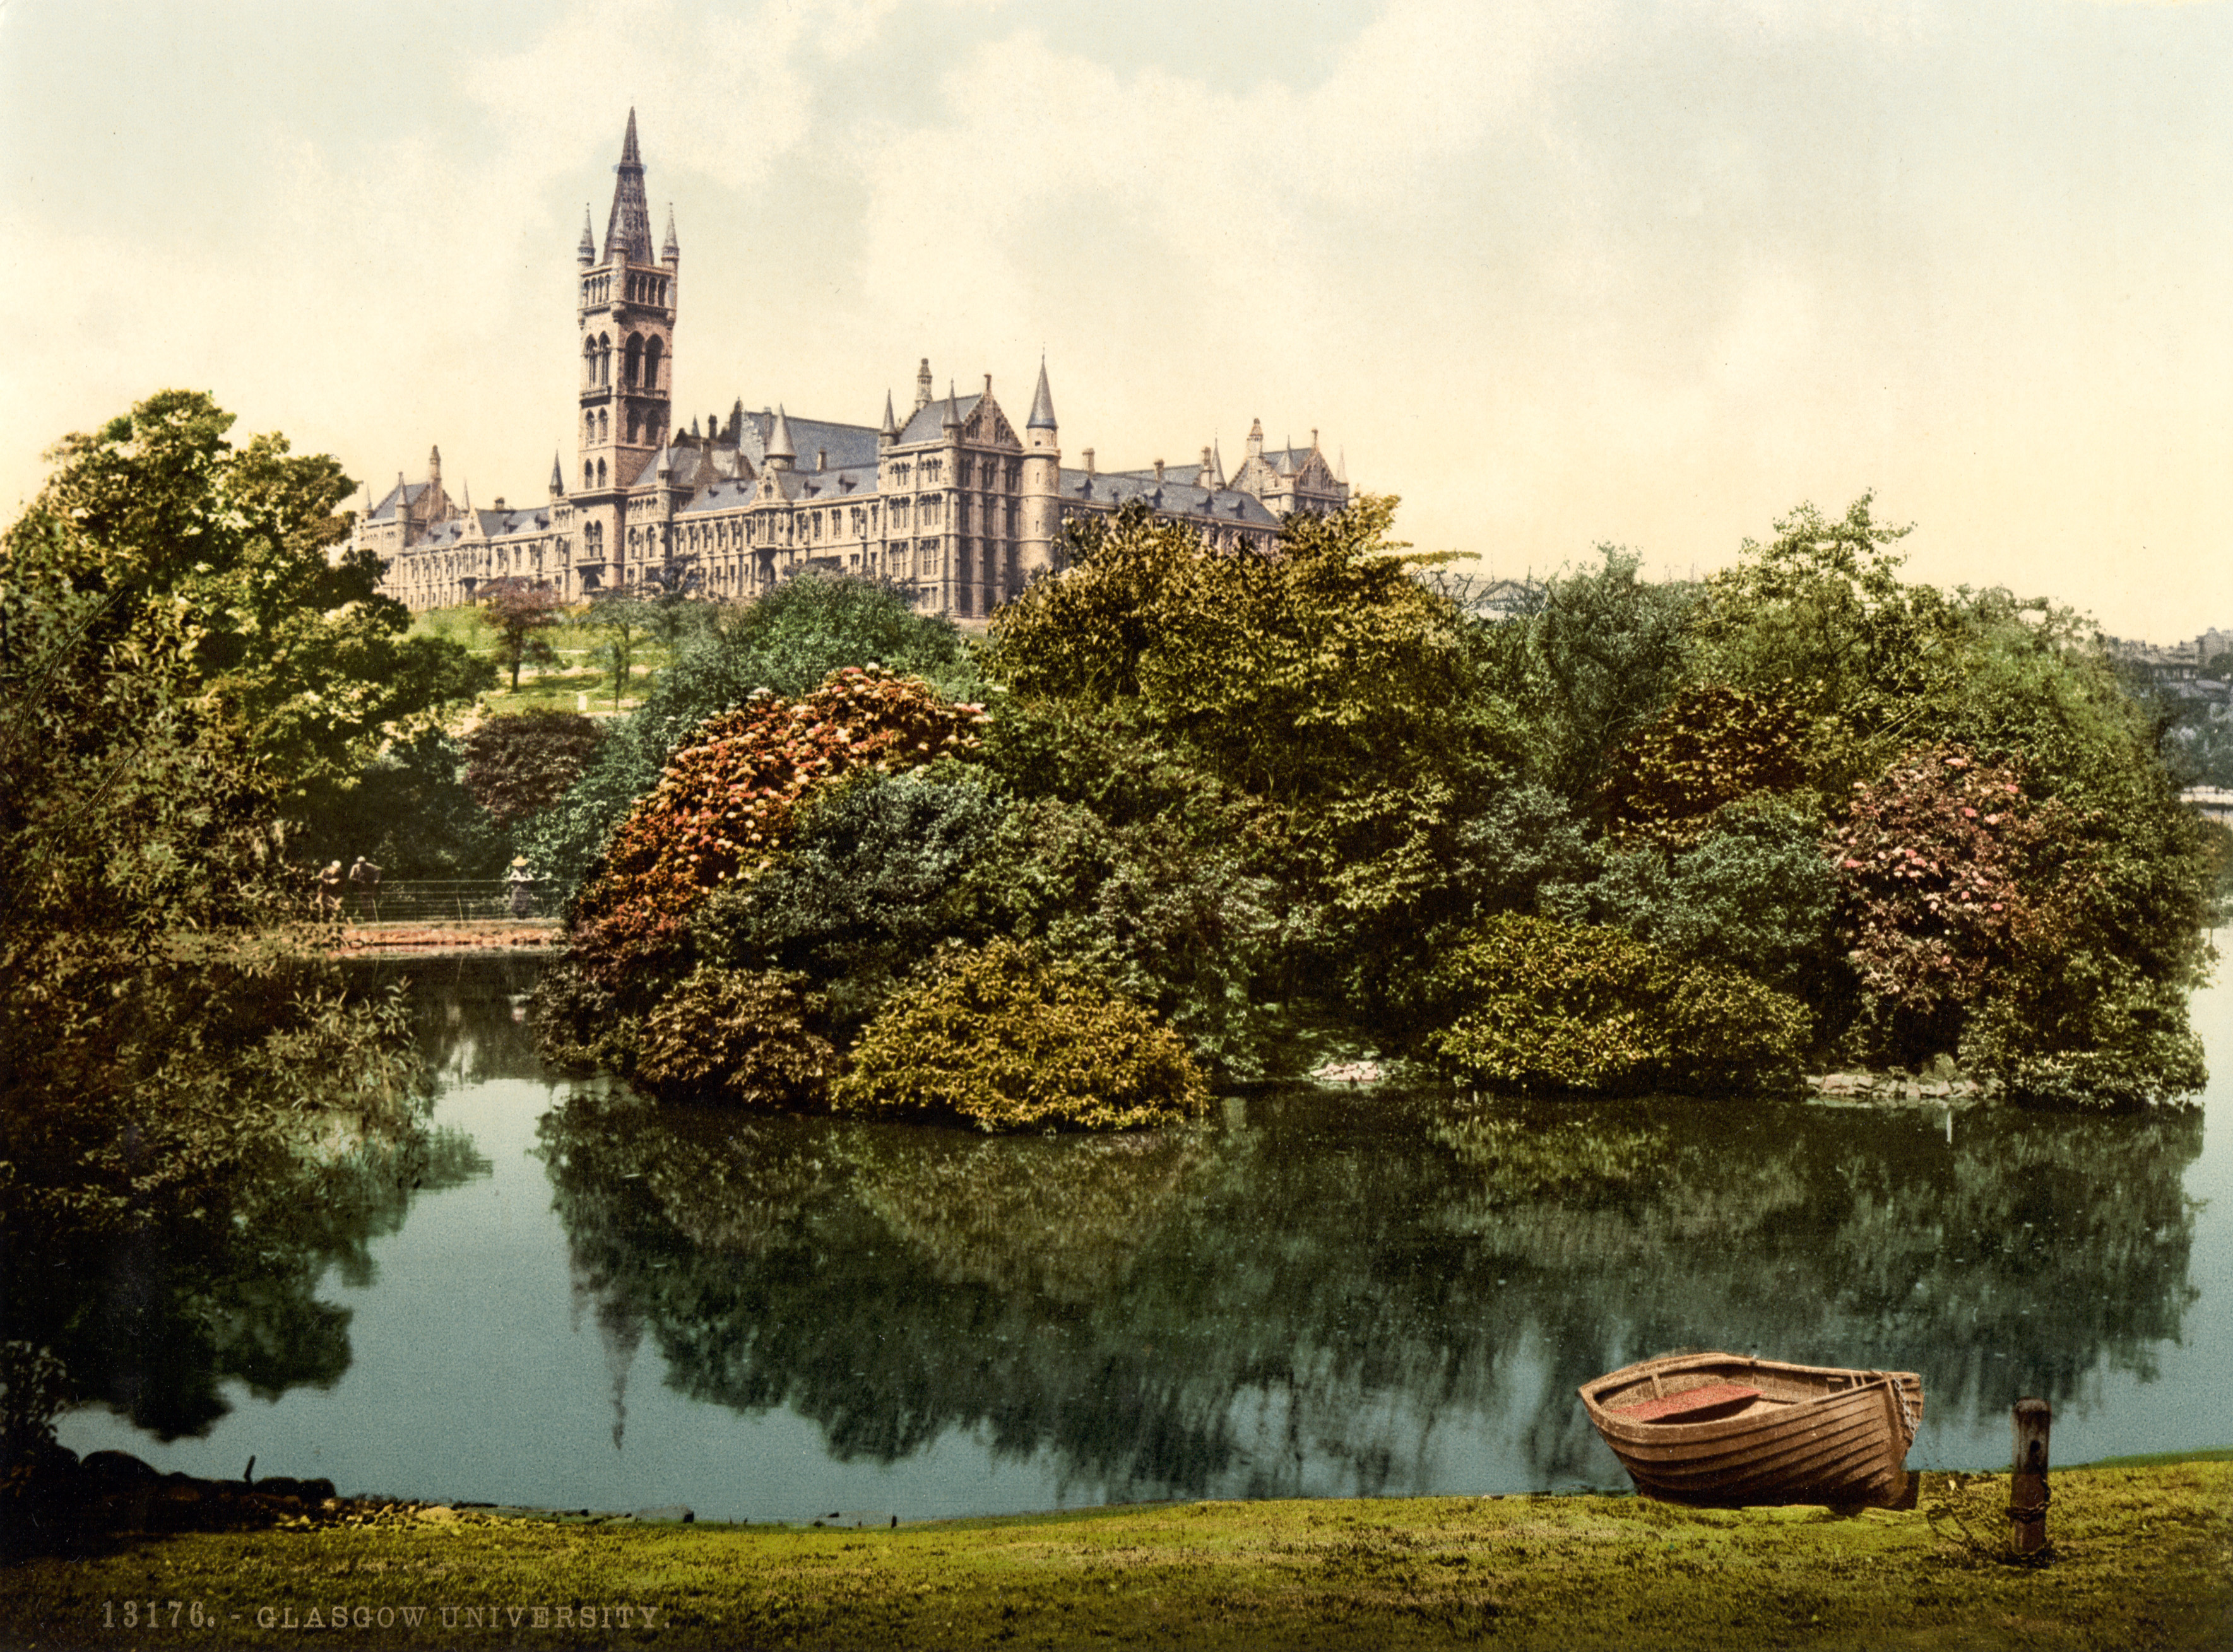 Photochrom postcard of the then-new main campus University of Glasgow, circa 1895 [3538 x 2618]